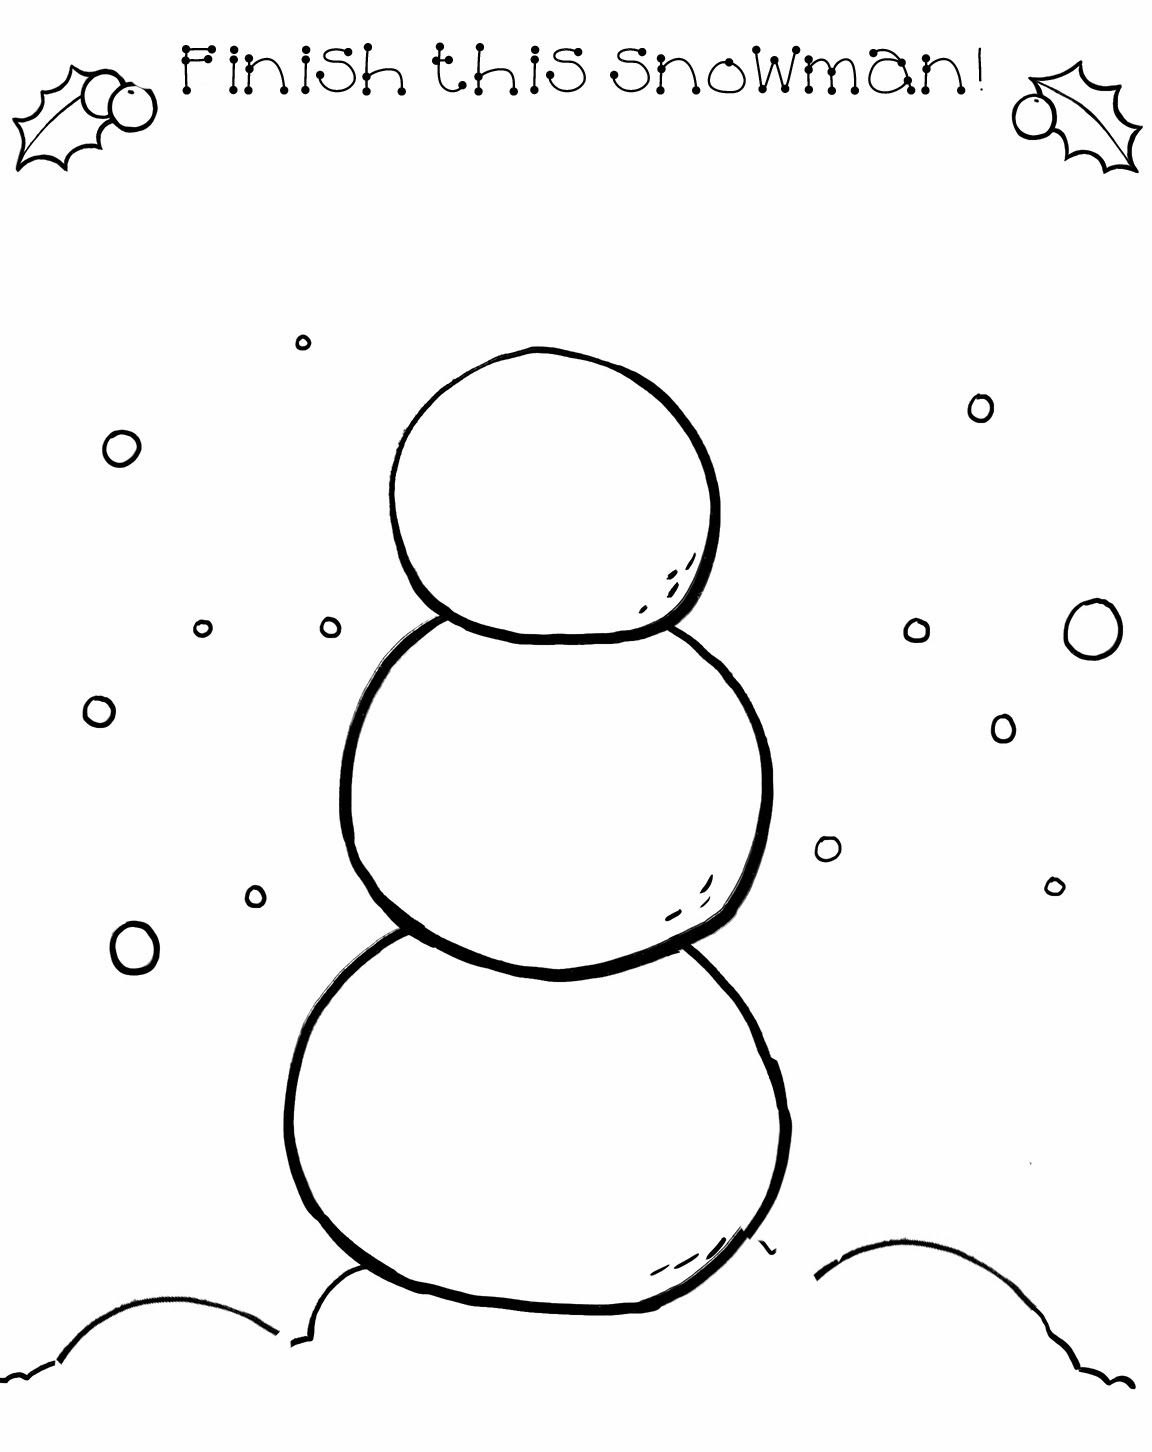 Snowman Drawing Activity For Print 1 152 1 452 Pixels